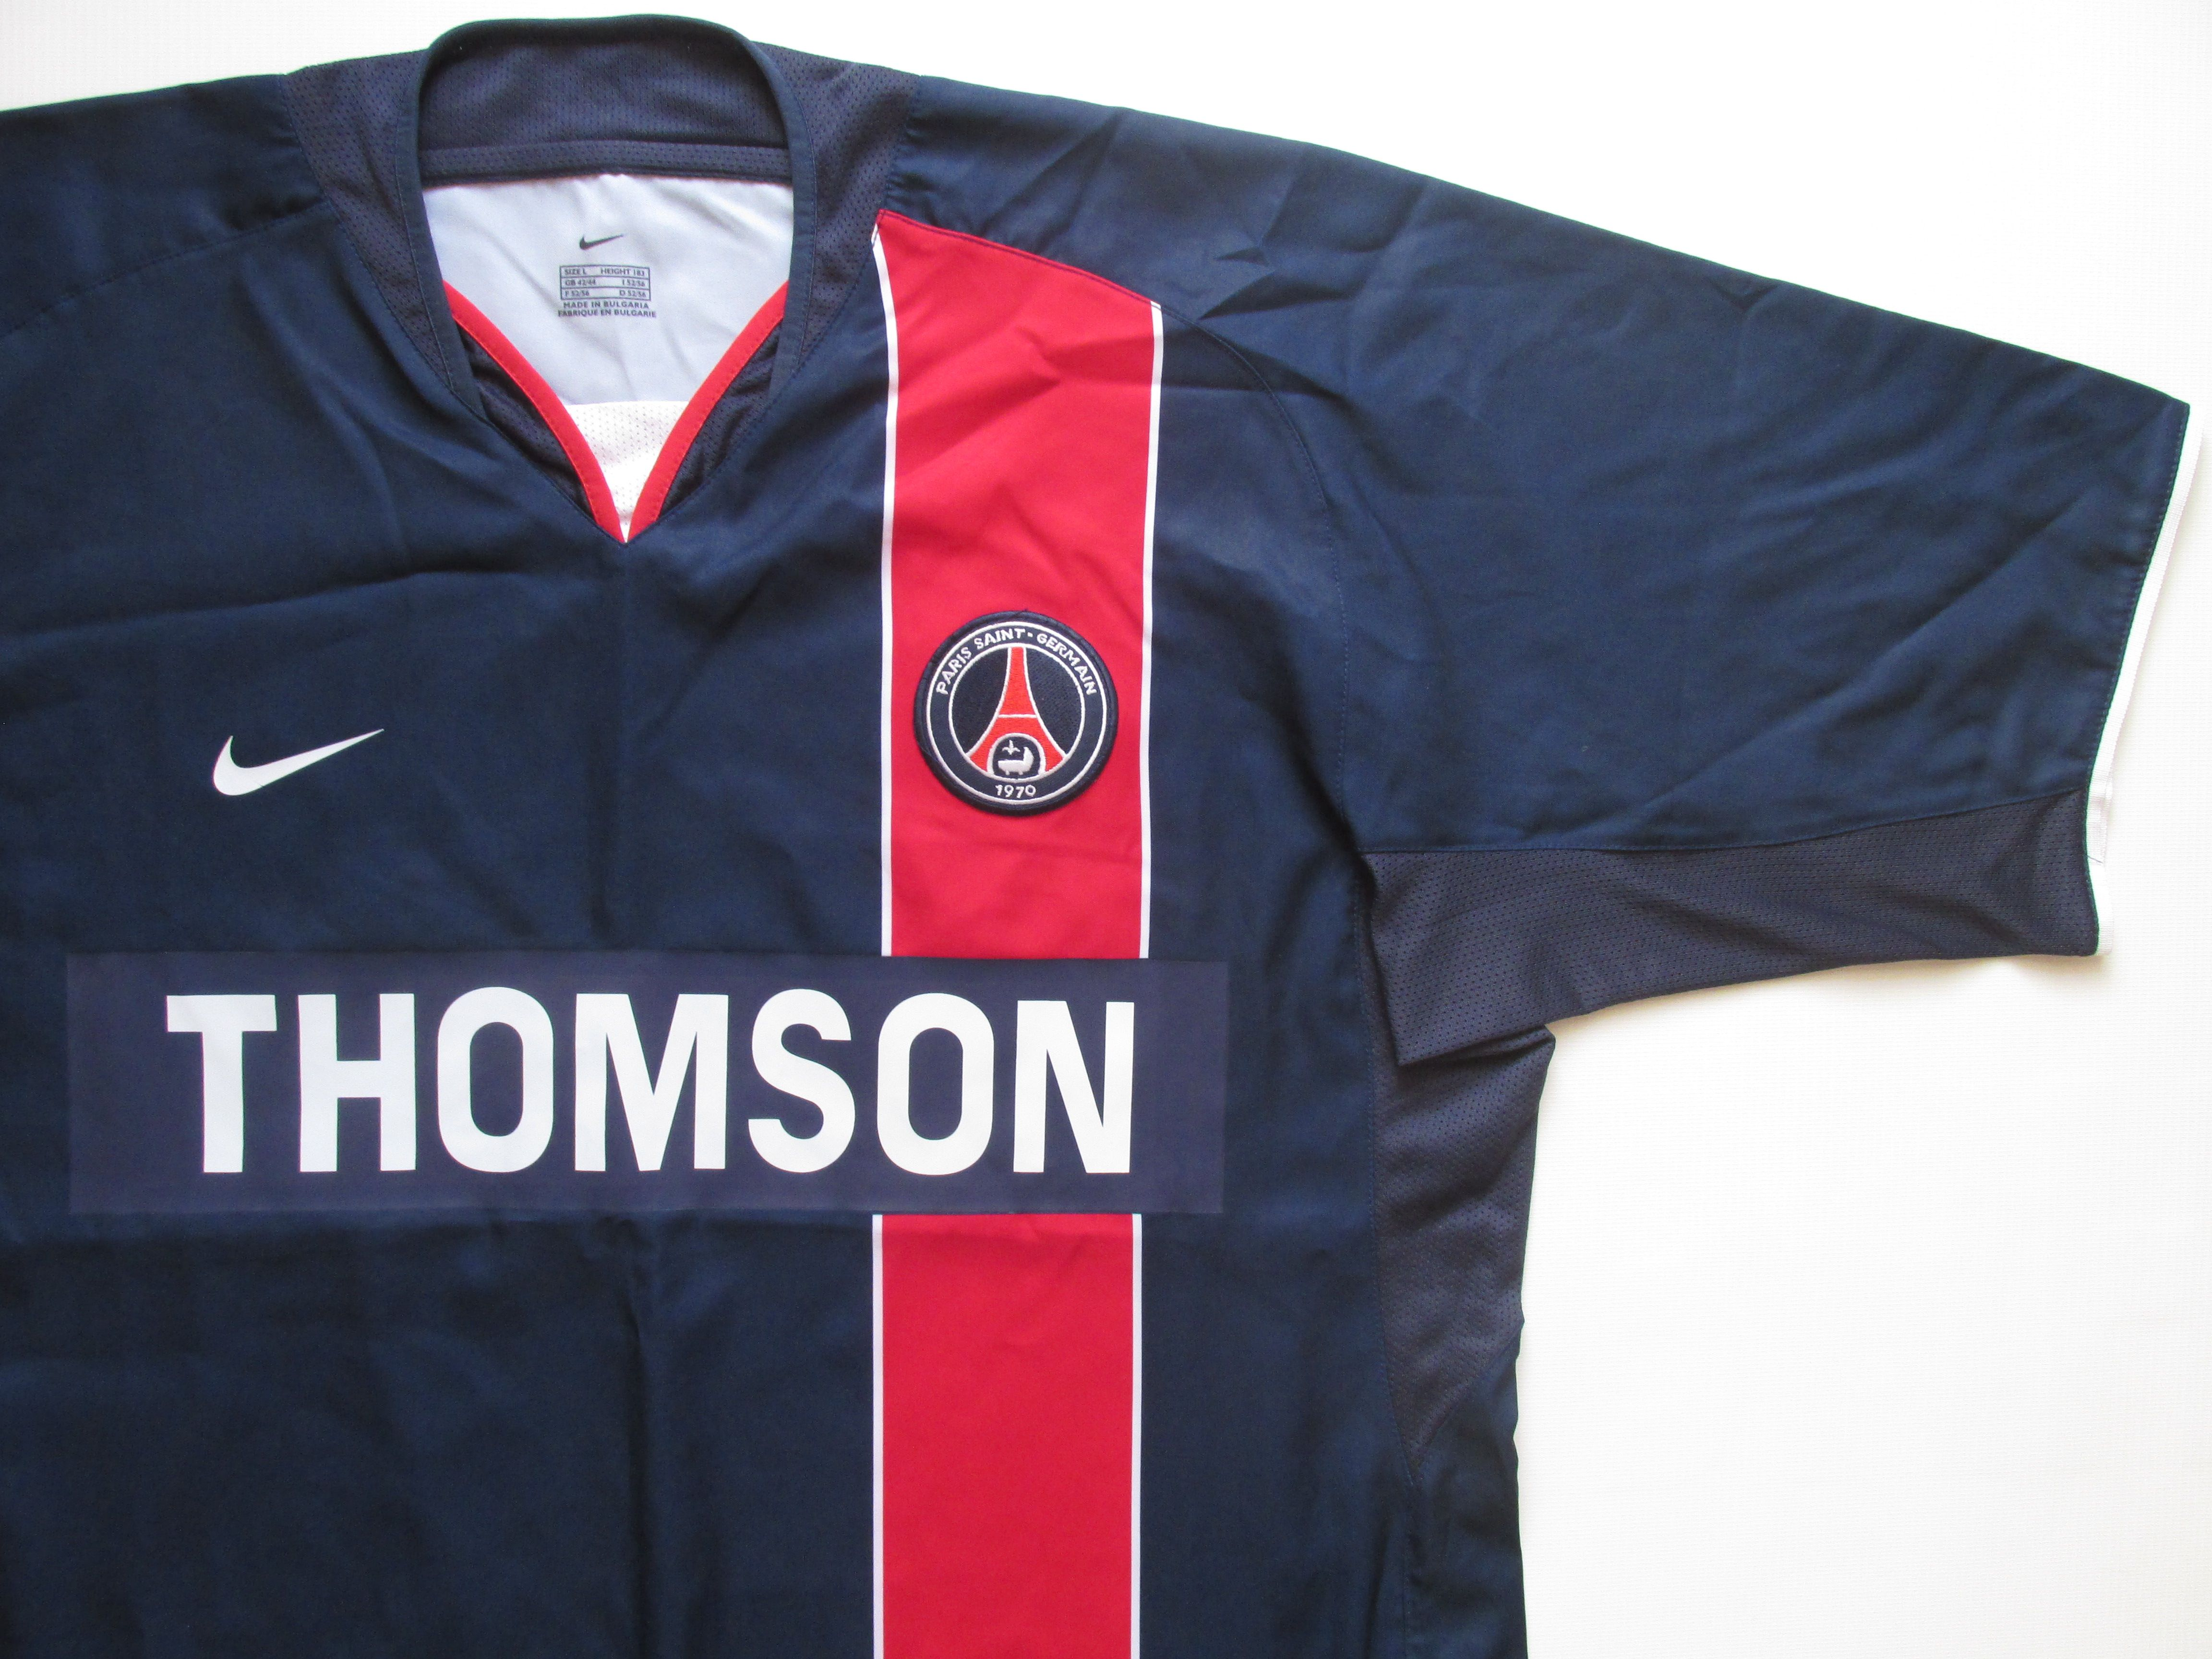 bcbf1765d57 Paris Saint-Germain 2003/2004 home football shirt by Nike France vintage  maillot soccer jersey PSG #Paris #PSG #ParisSaintGermain #France #vintage  ...